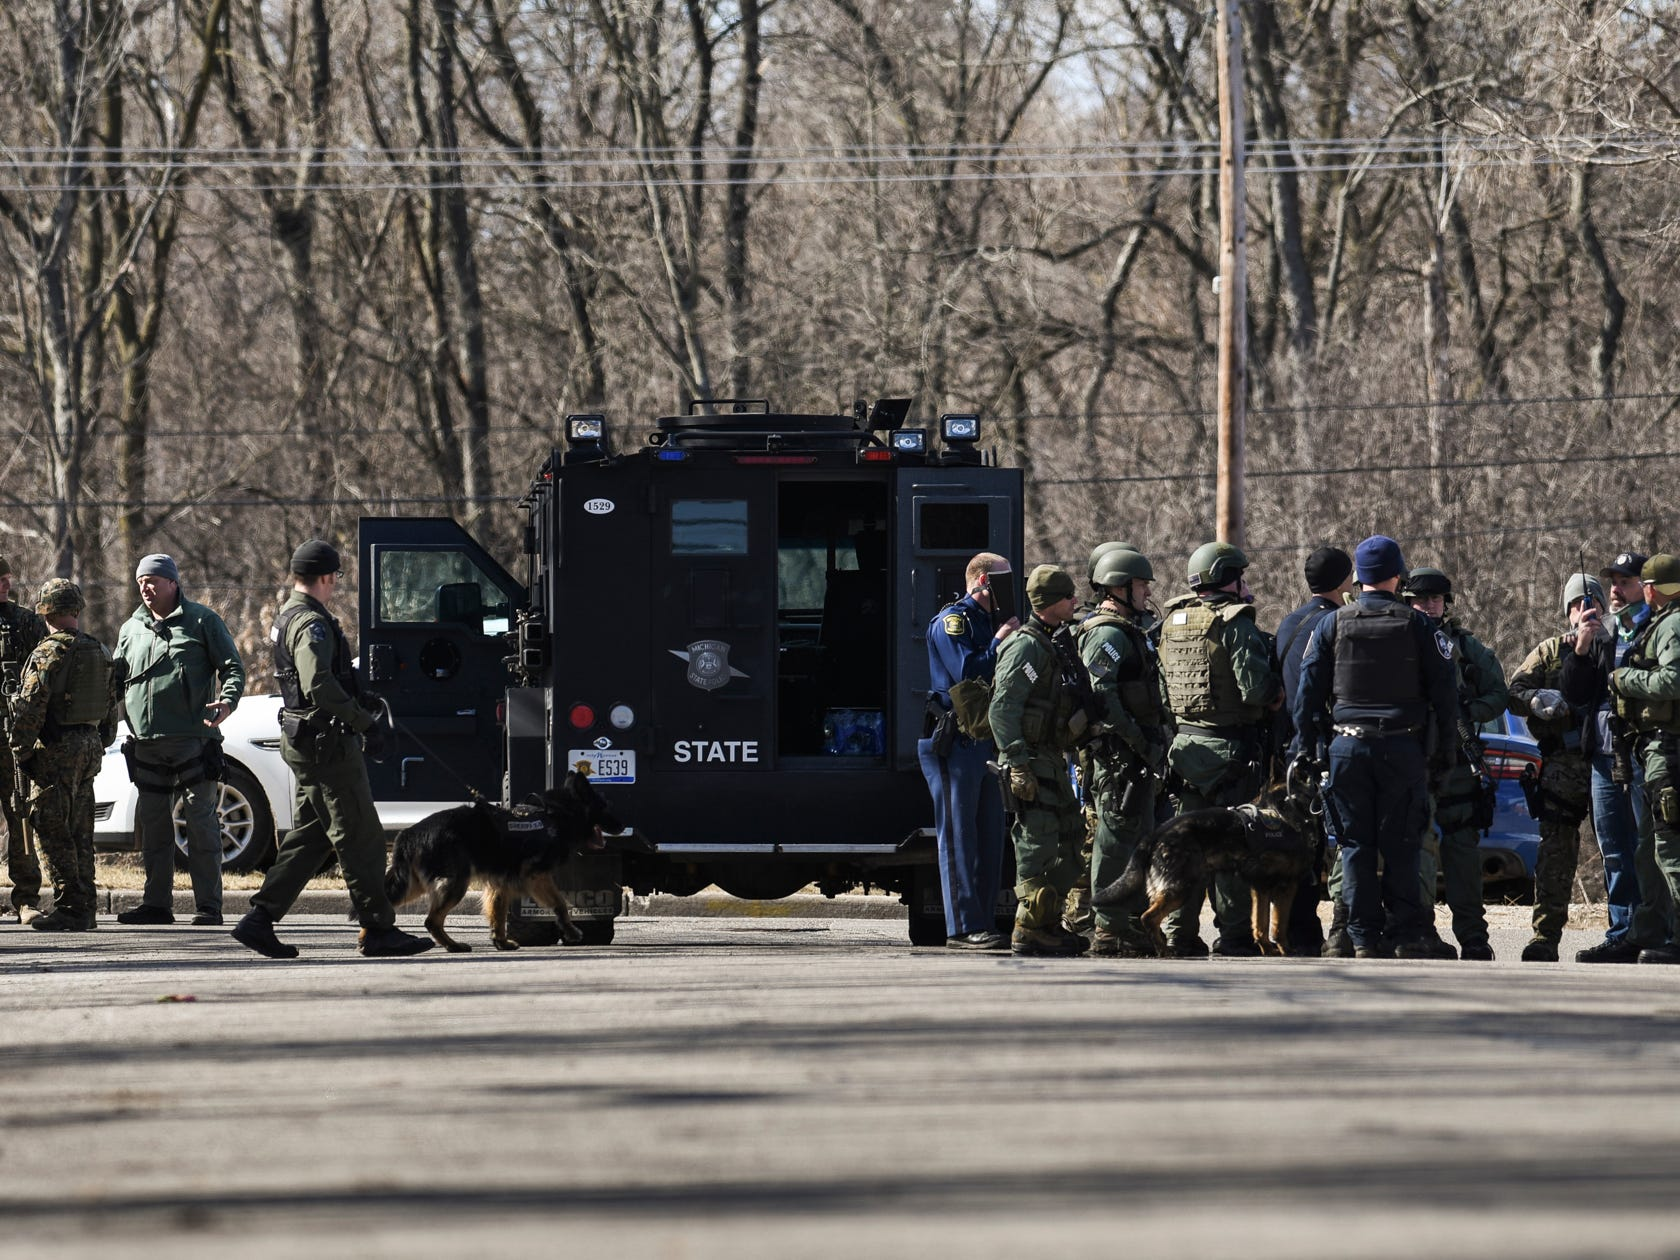 Law enforcement, including the Michigan State Police ES (Emergency Support) team prepare to search neighborhoods adjacent to the campus of Central Michigan University for James Davis Jr., on Friday, March 2, 2018, after he reportedly shot and killed his parents in a dorm on campus earlier in the morning.